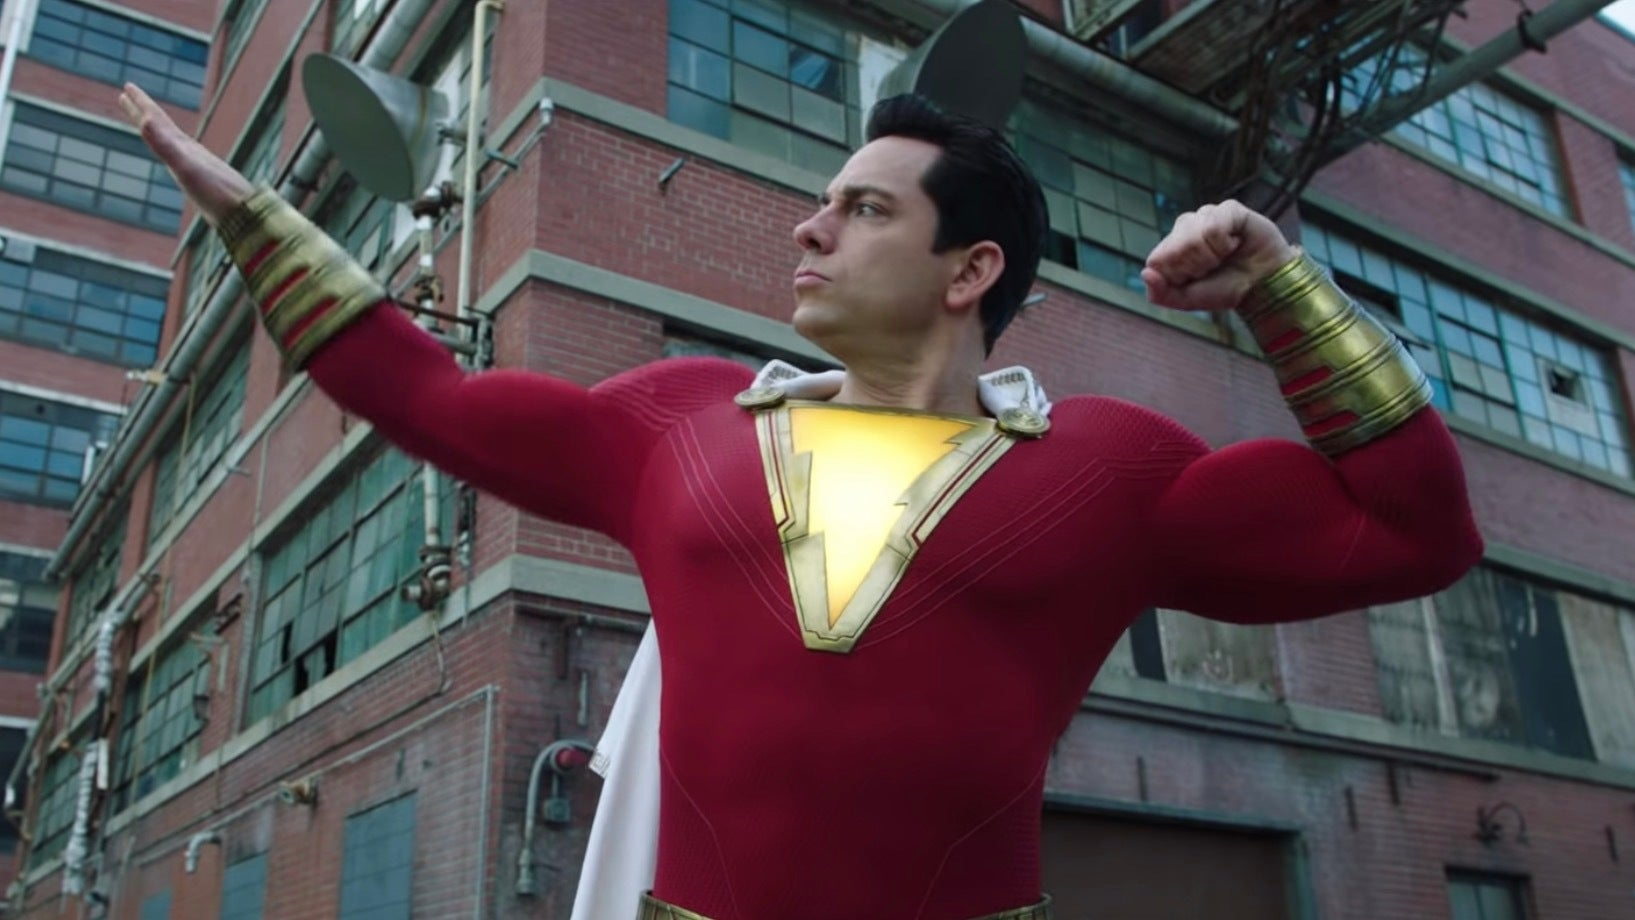 Batman Makes A Soft Cameo In The Latest Shazam! Trailer